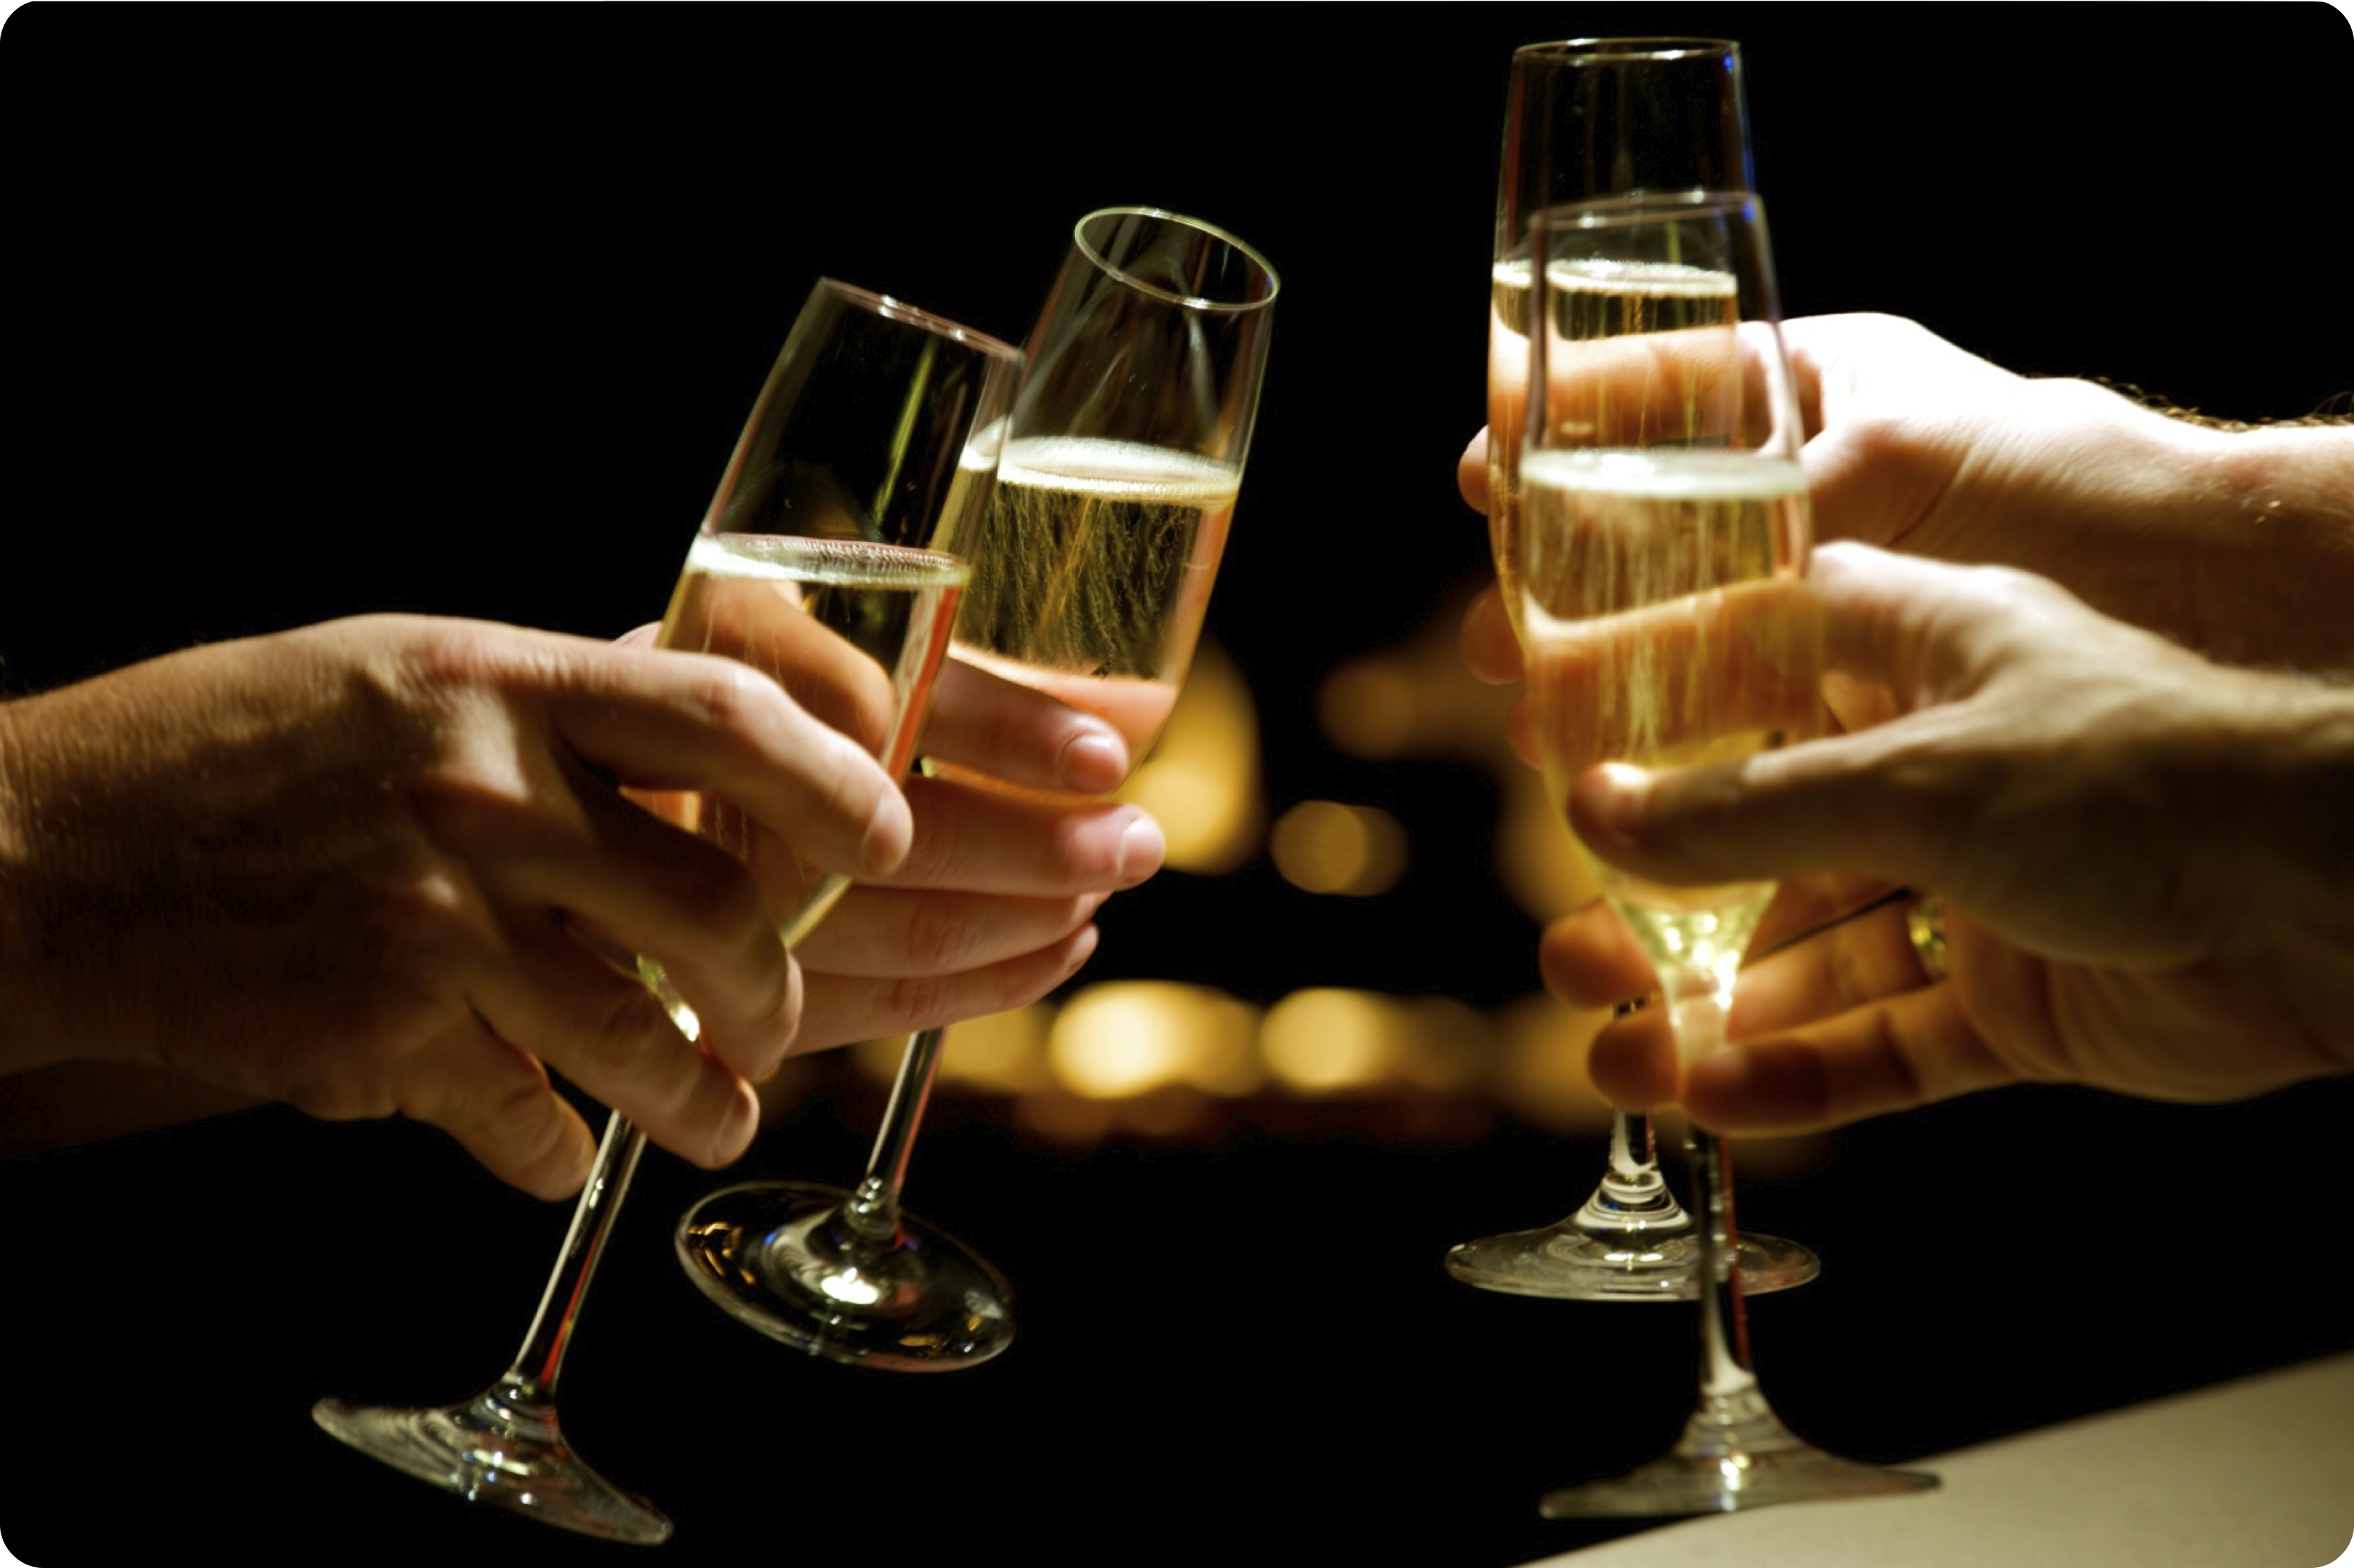 Cheers with Champagne on a Party #4246040, 3379x2251 | All ...